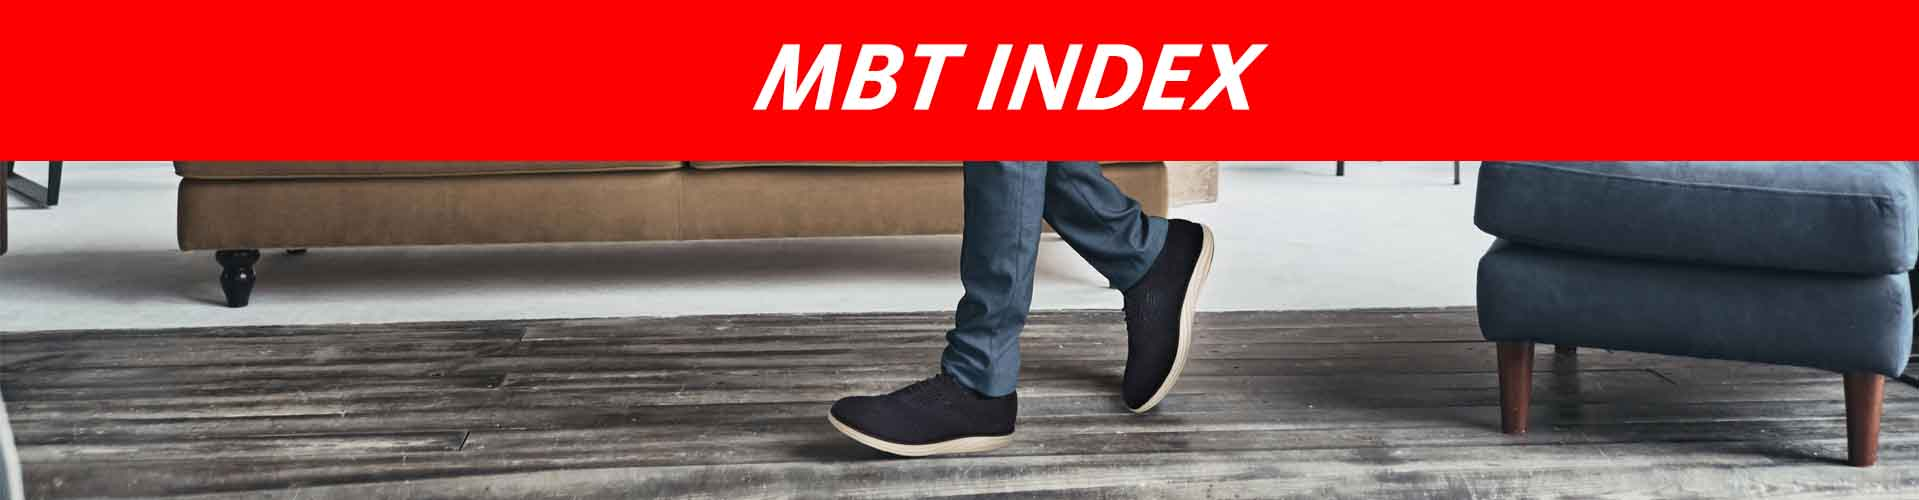 MBT Index